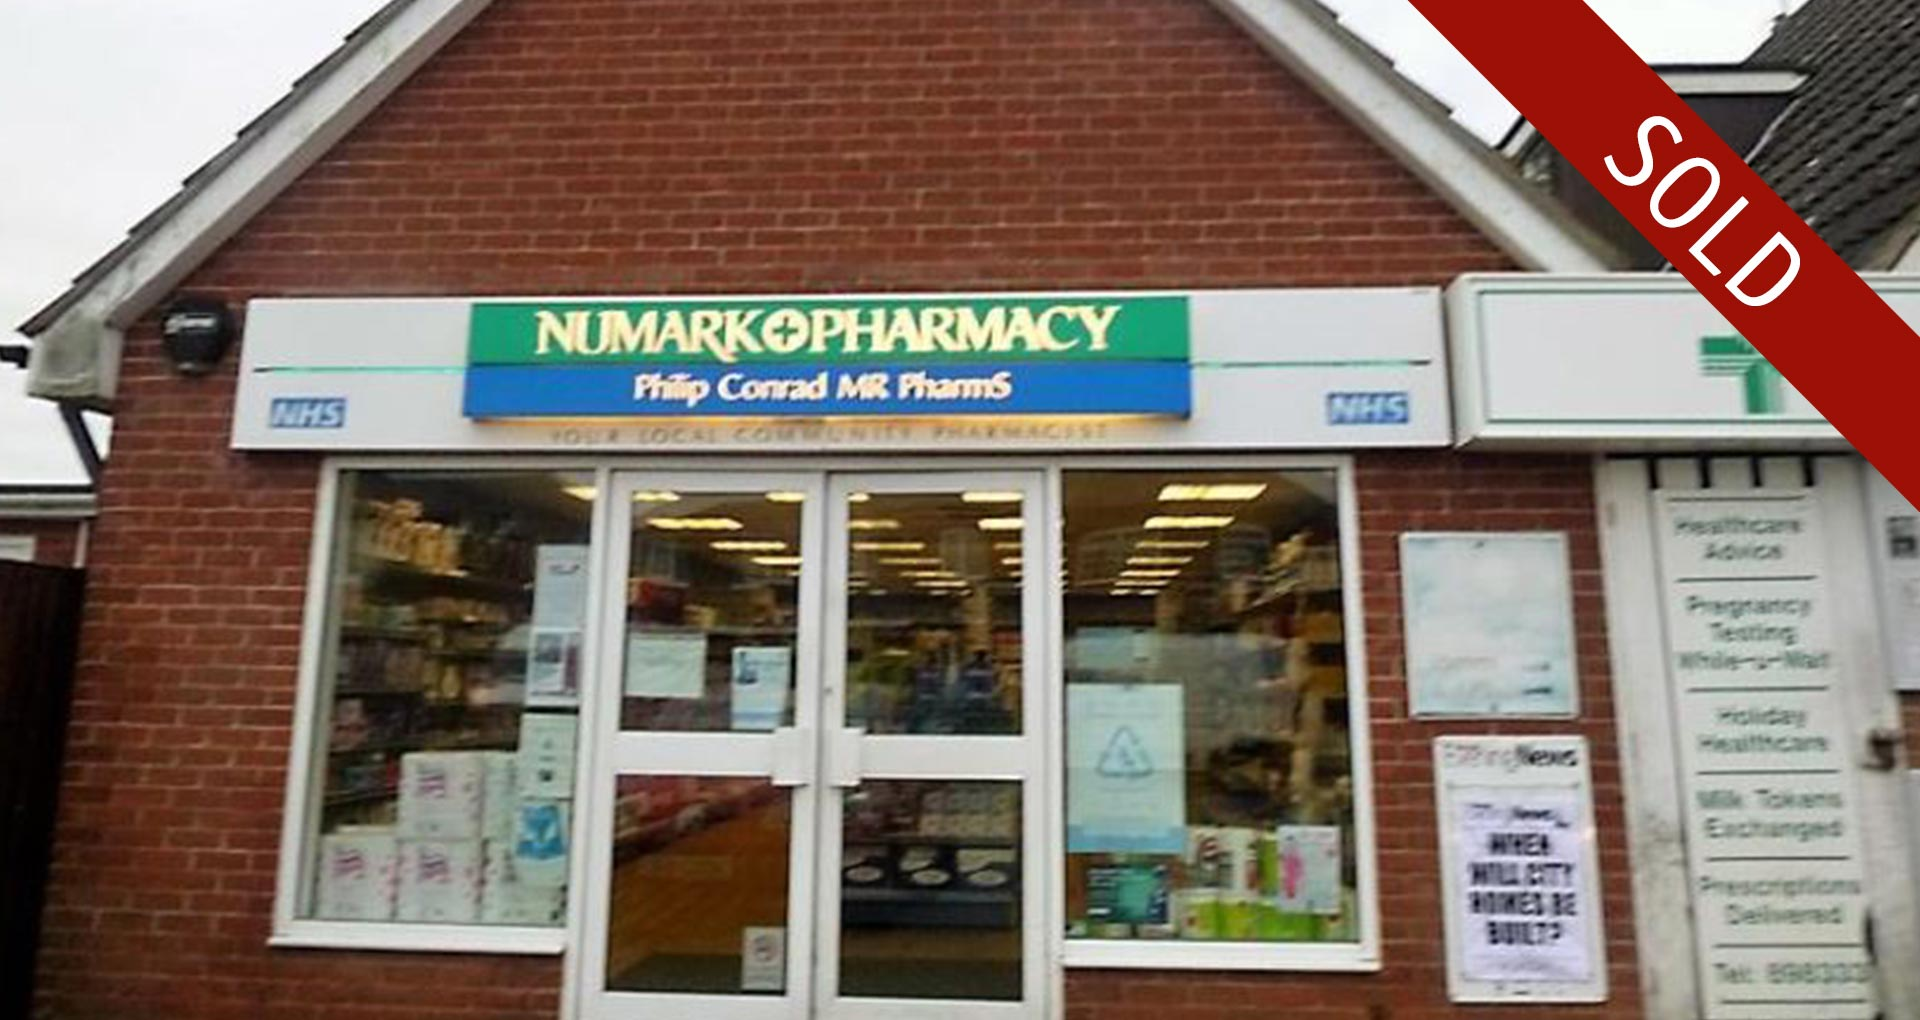 Norfolk Pharmacy Completion